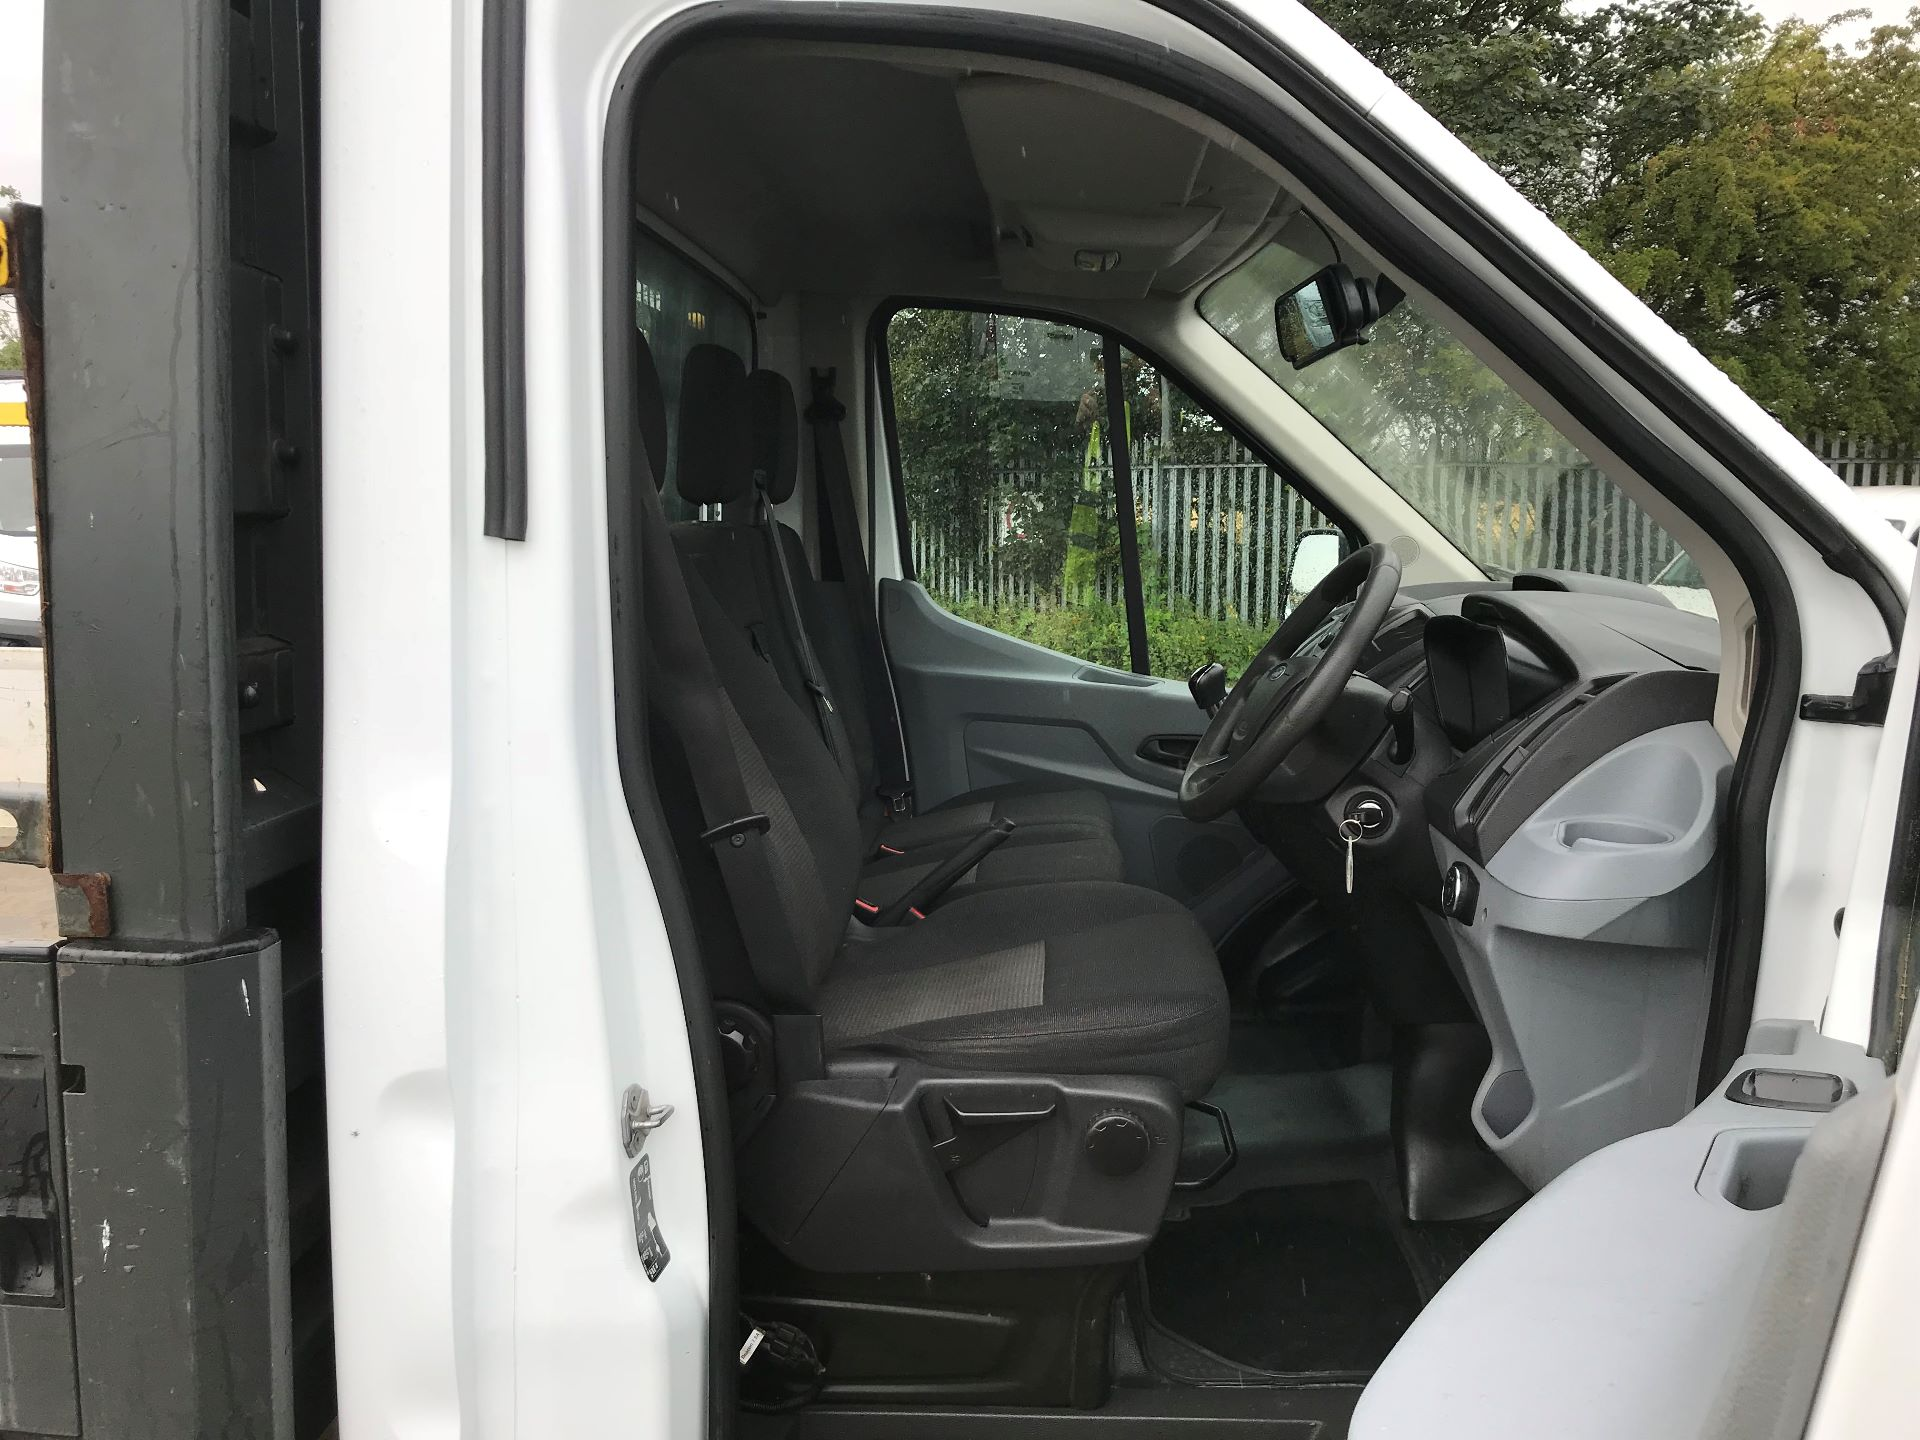 2016 Ford Transit 2.2 Tdci 125Ps Heavy Duty Chassis Cab *VALUE RANGE VEHICLE CONDITION REFLECTED IN PRICE*  (YS66SOE) Image 11